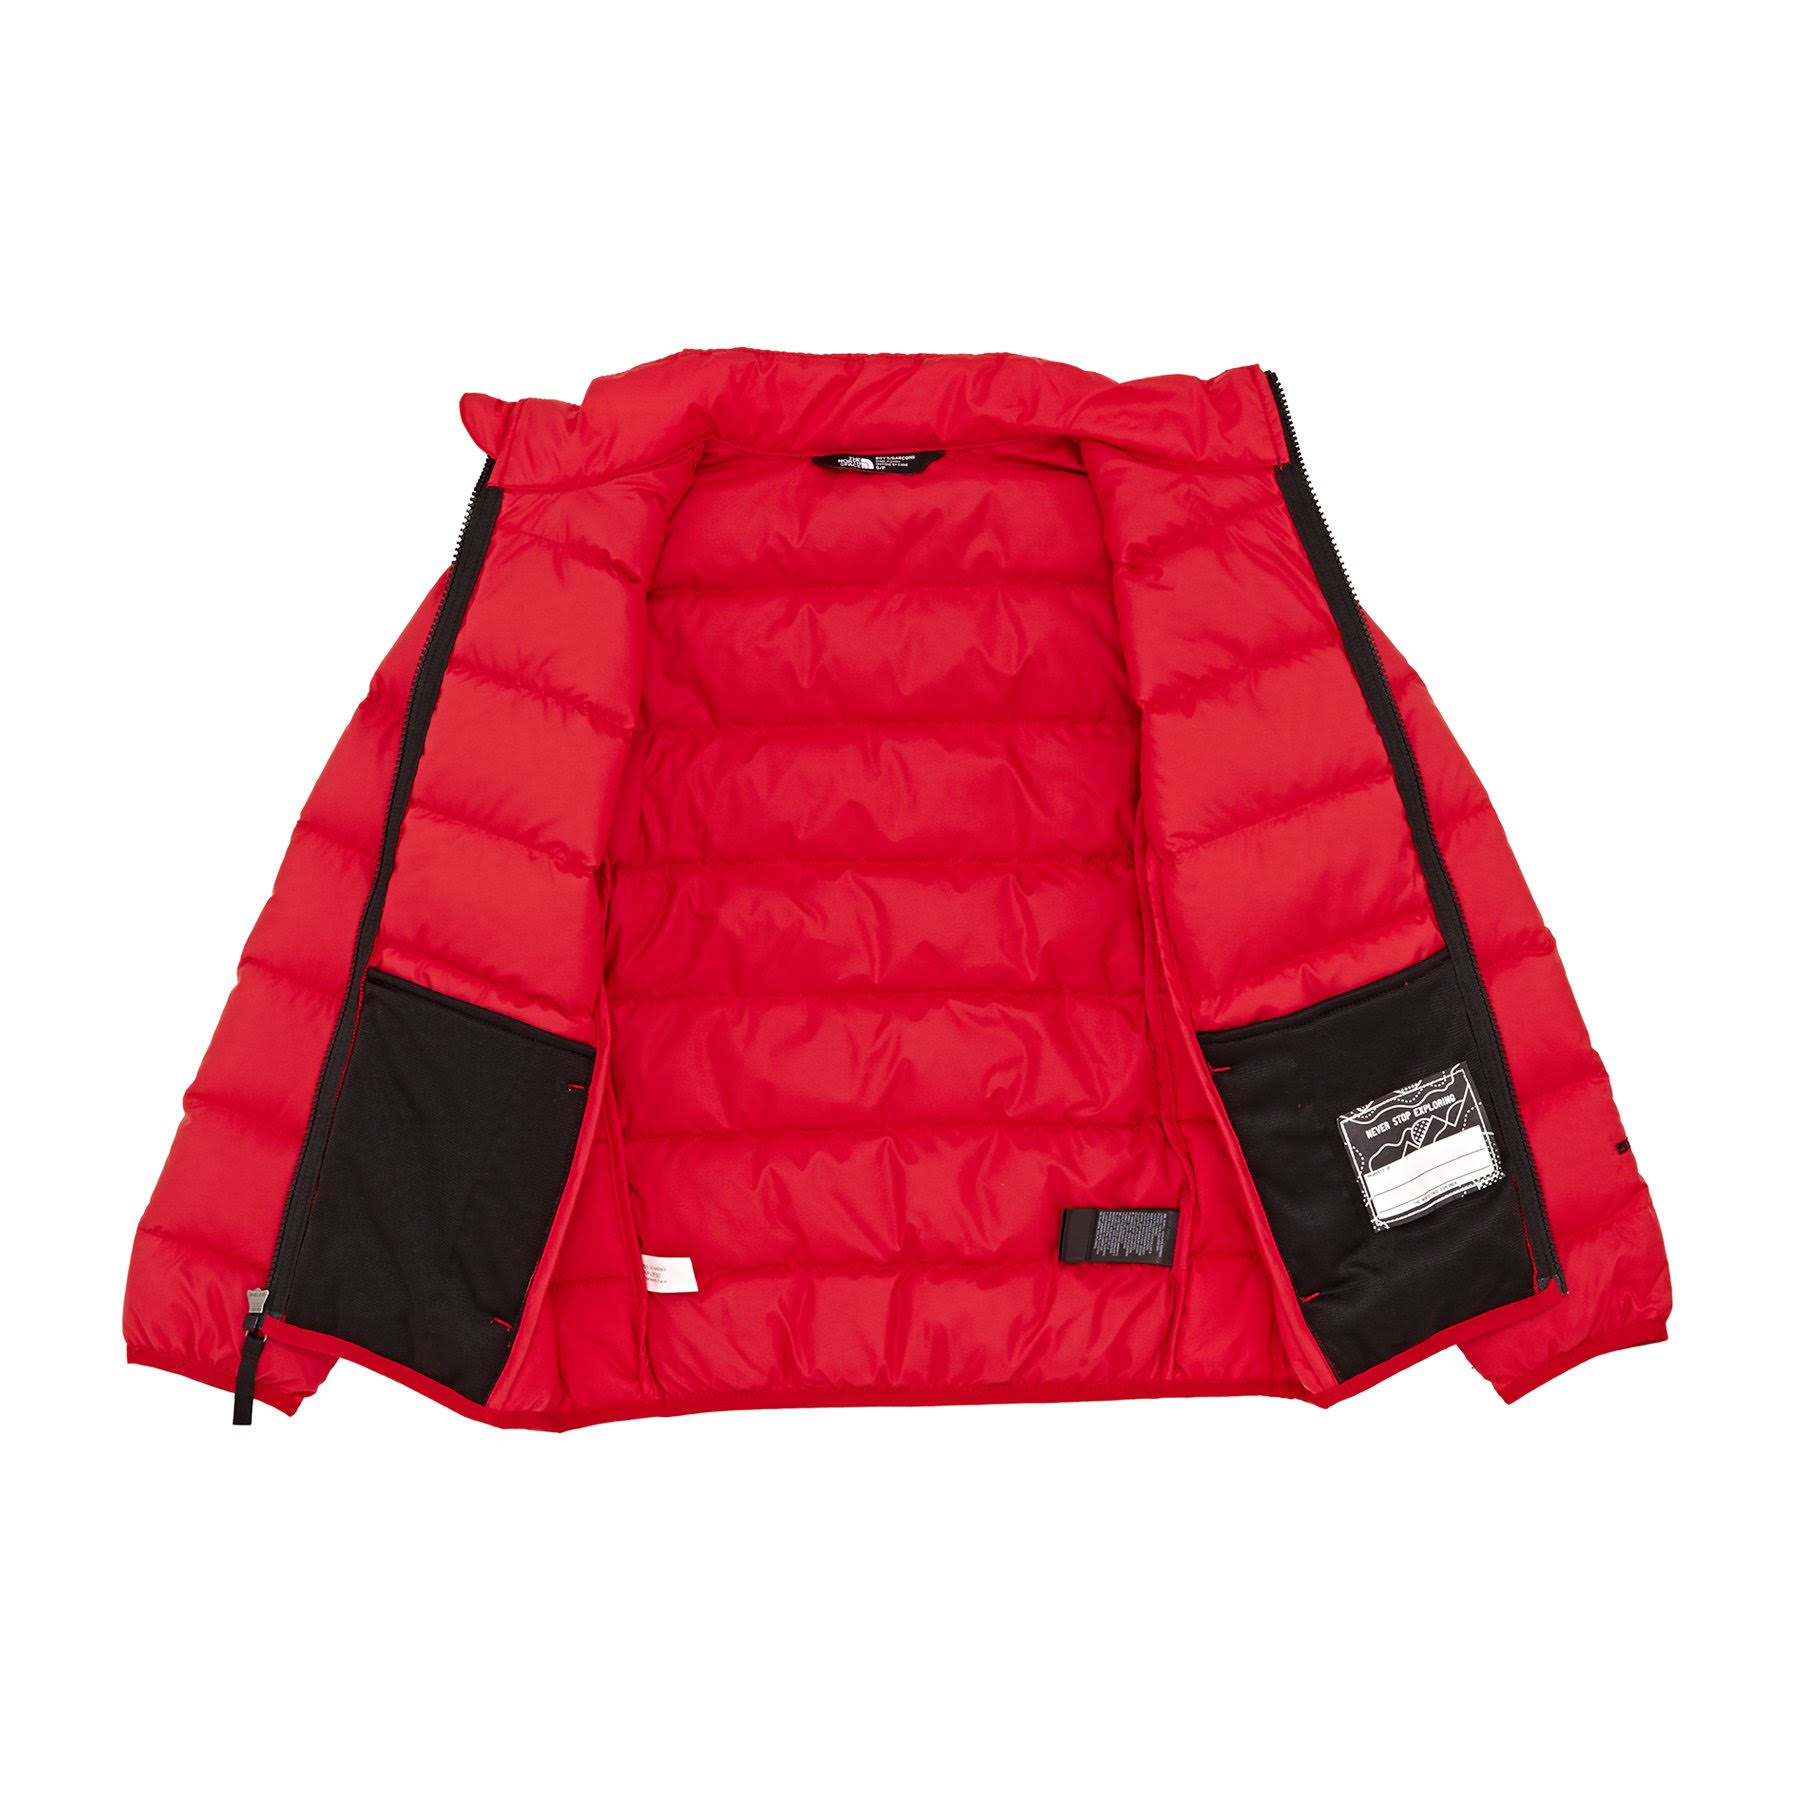 Black Tnf Anden Daunenjacke North Face Red Nf00chq6 Jungen The Y6xUzqw8c